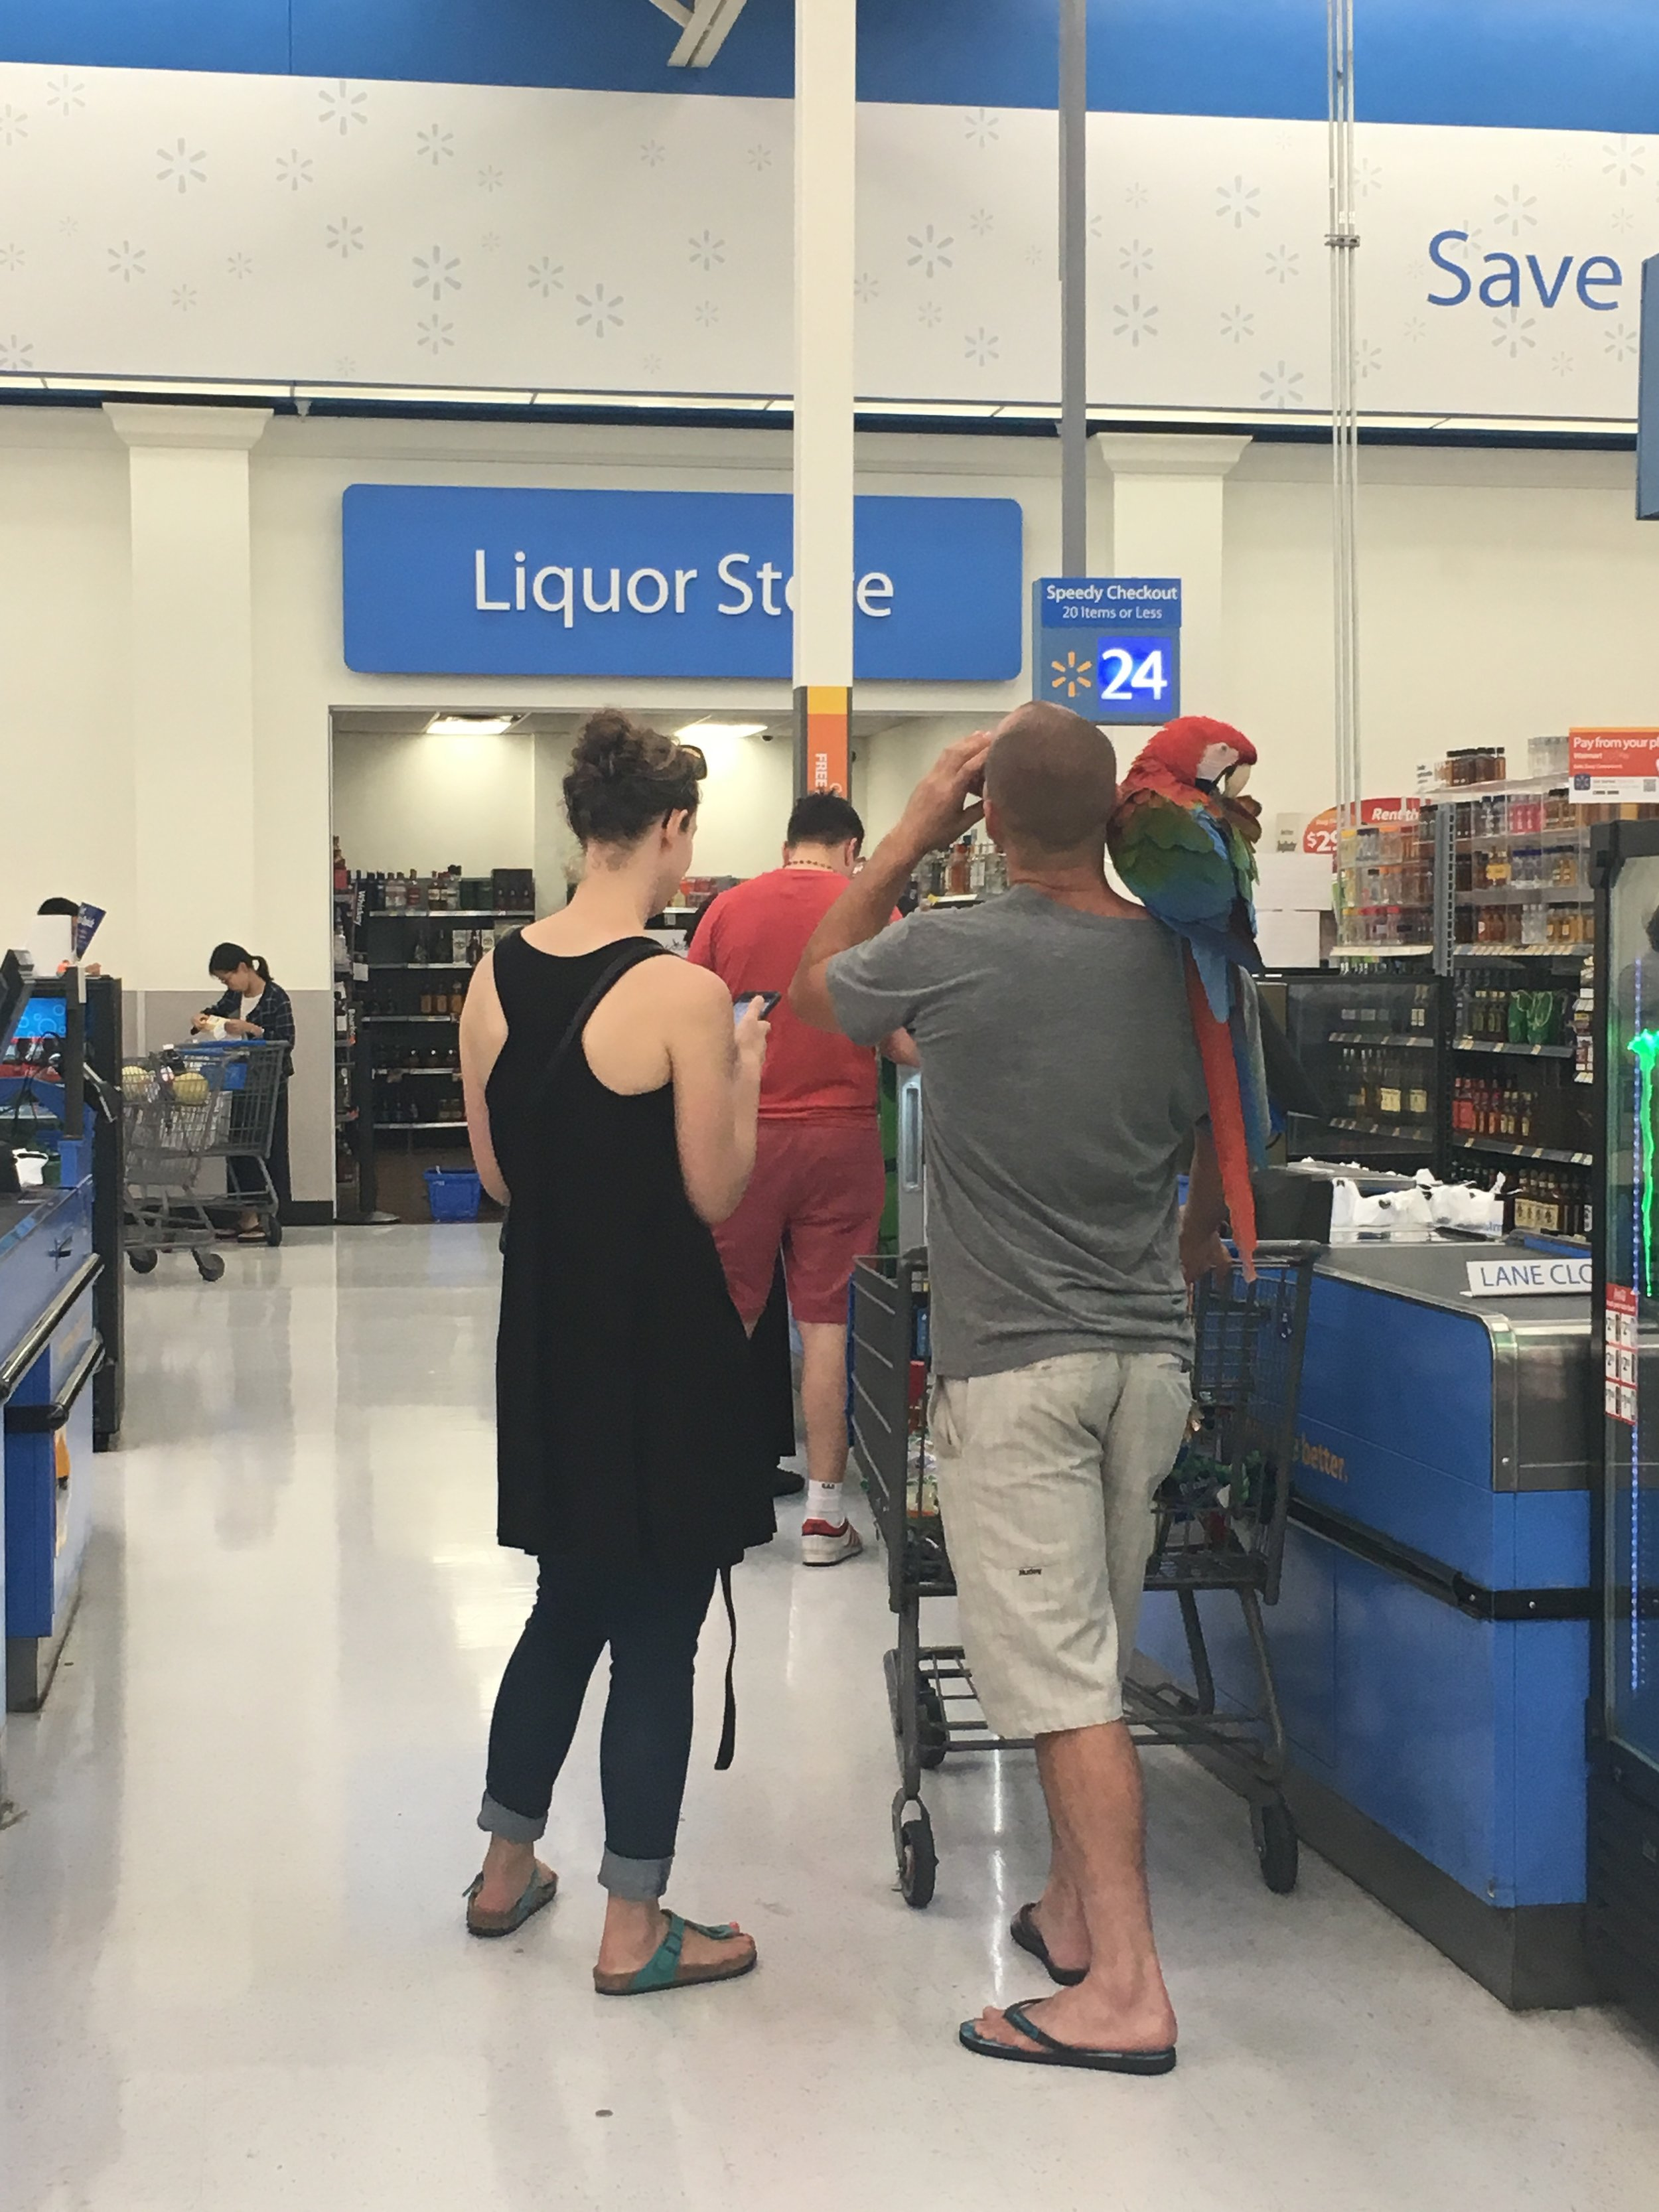 """parrot in Walmart: real life vs """"Confederacy of Dunces"""" moment?"""